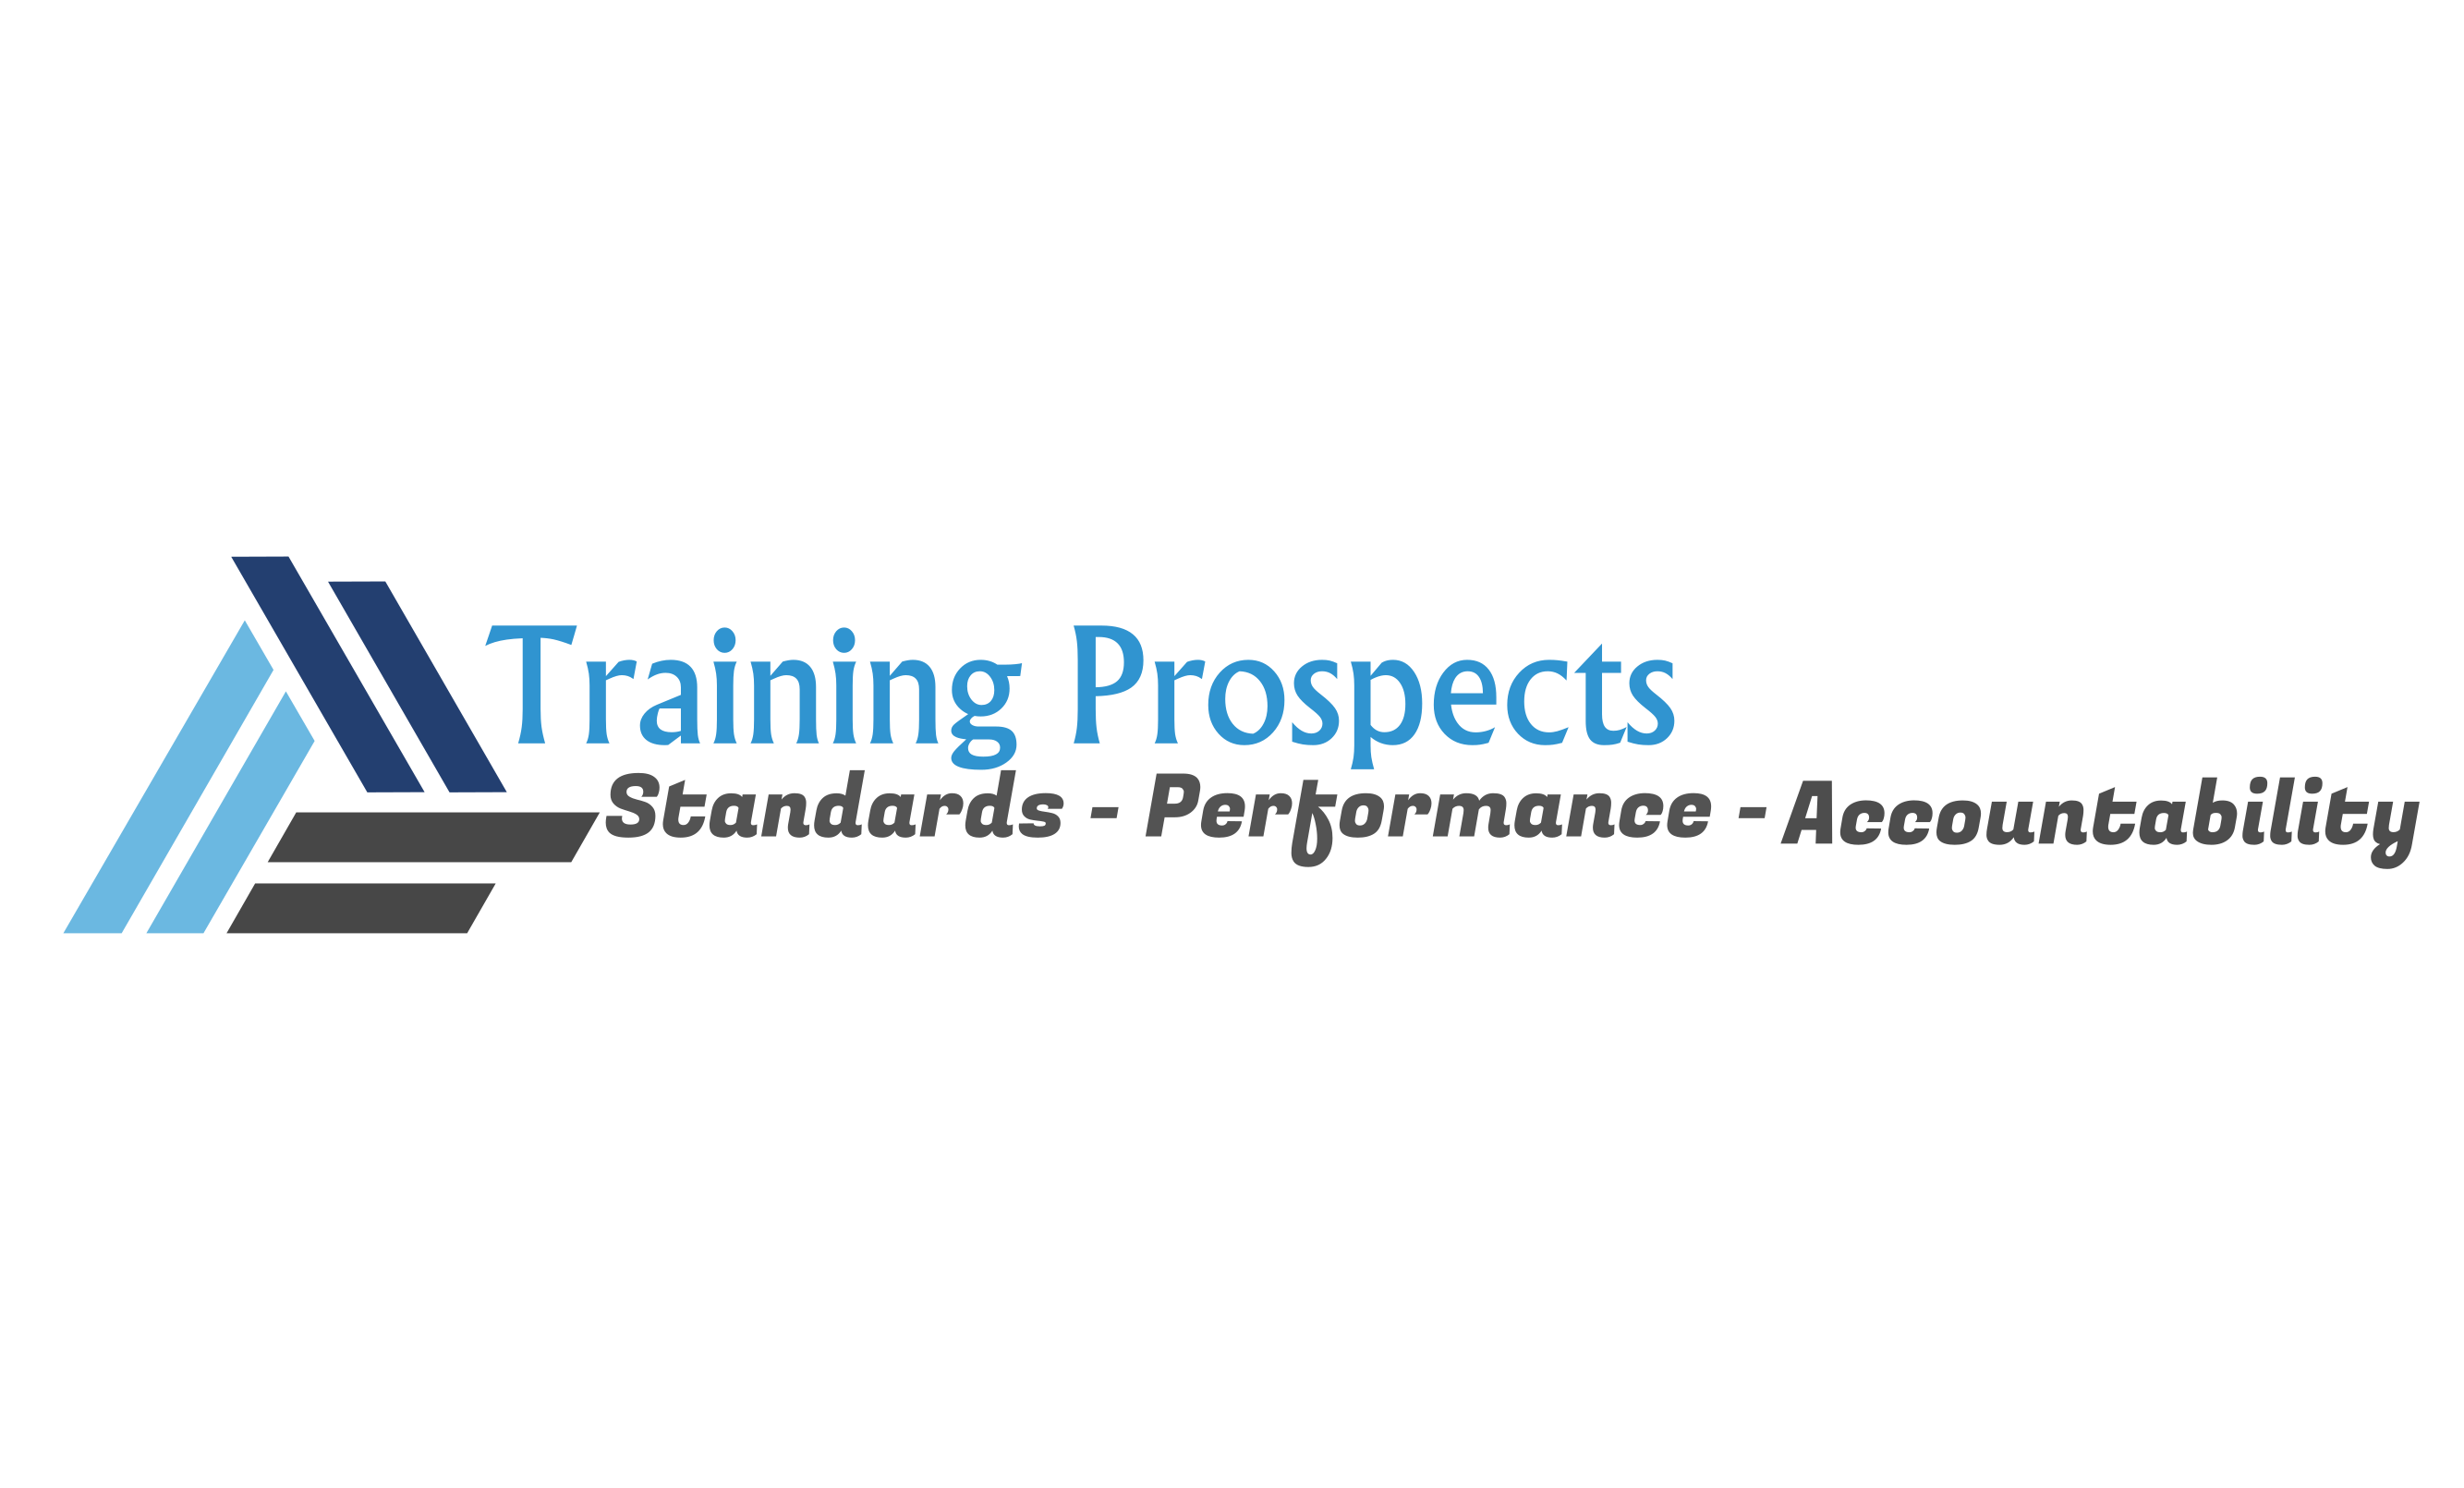 Training Prospects